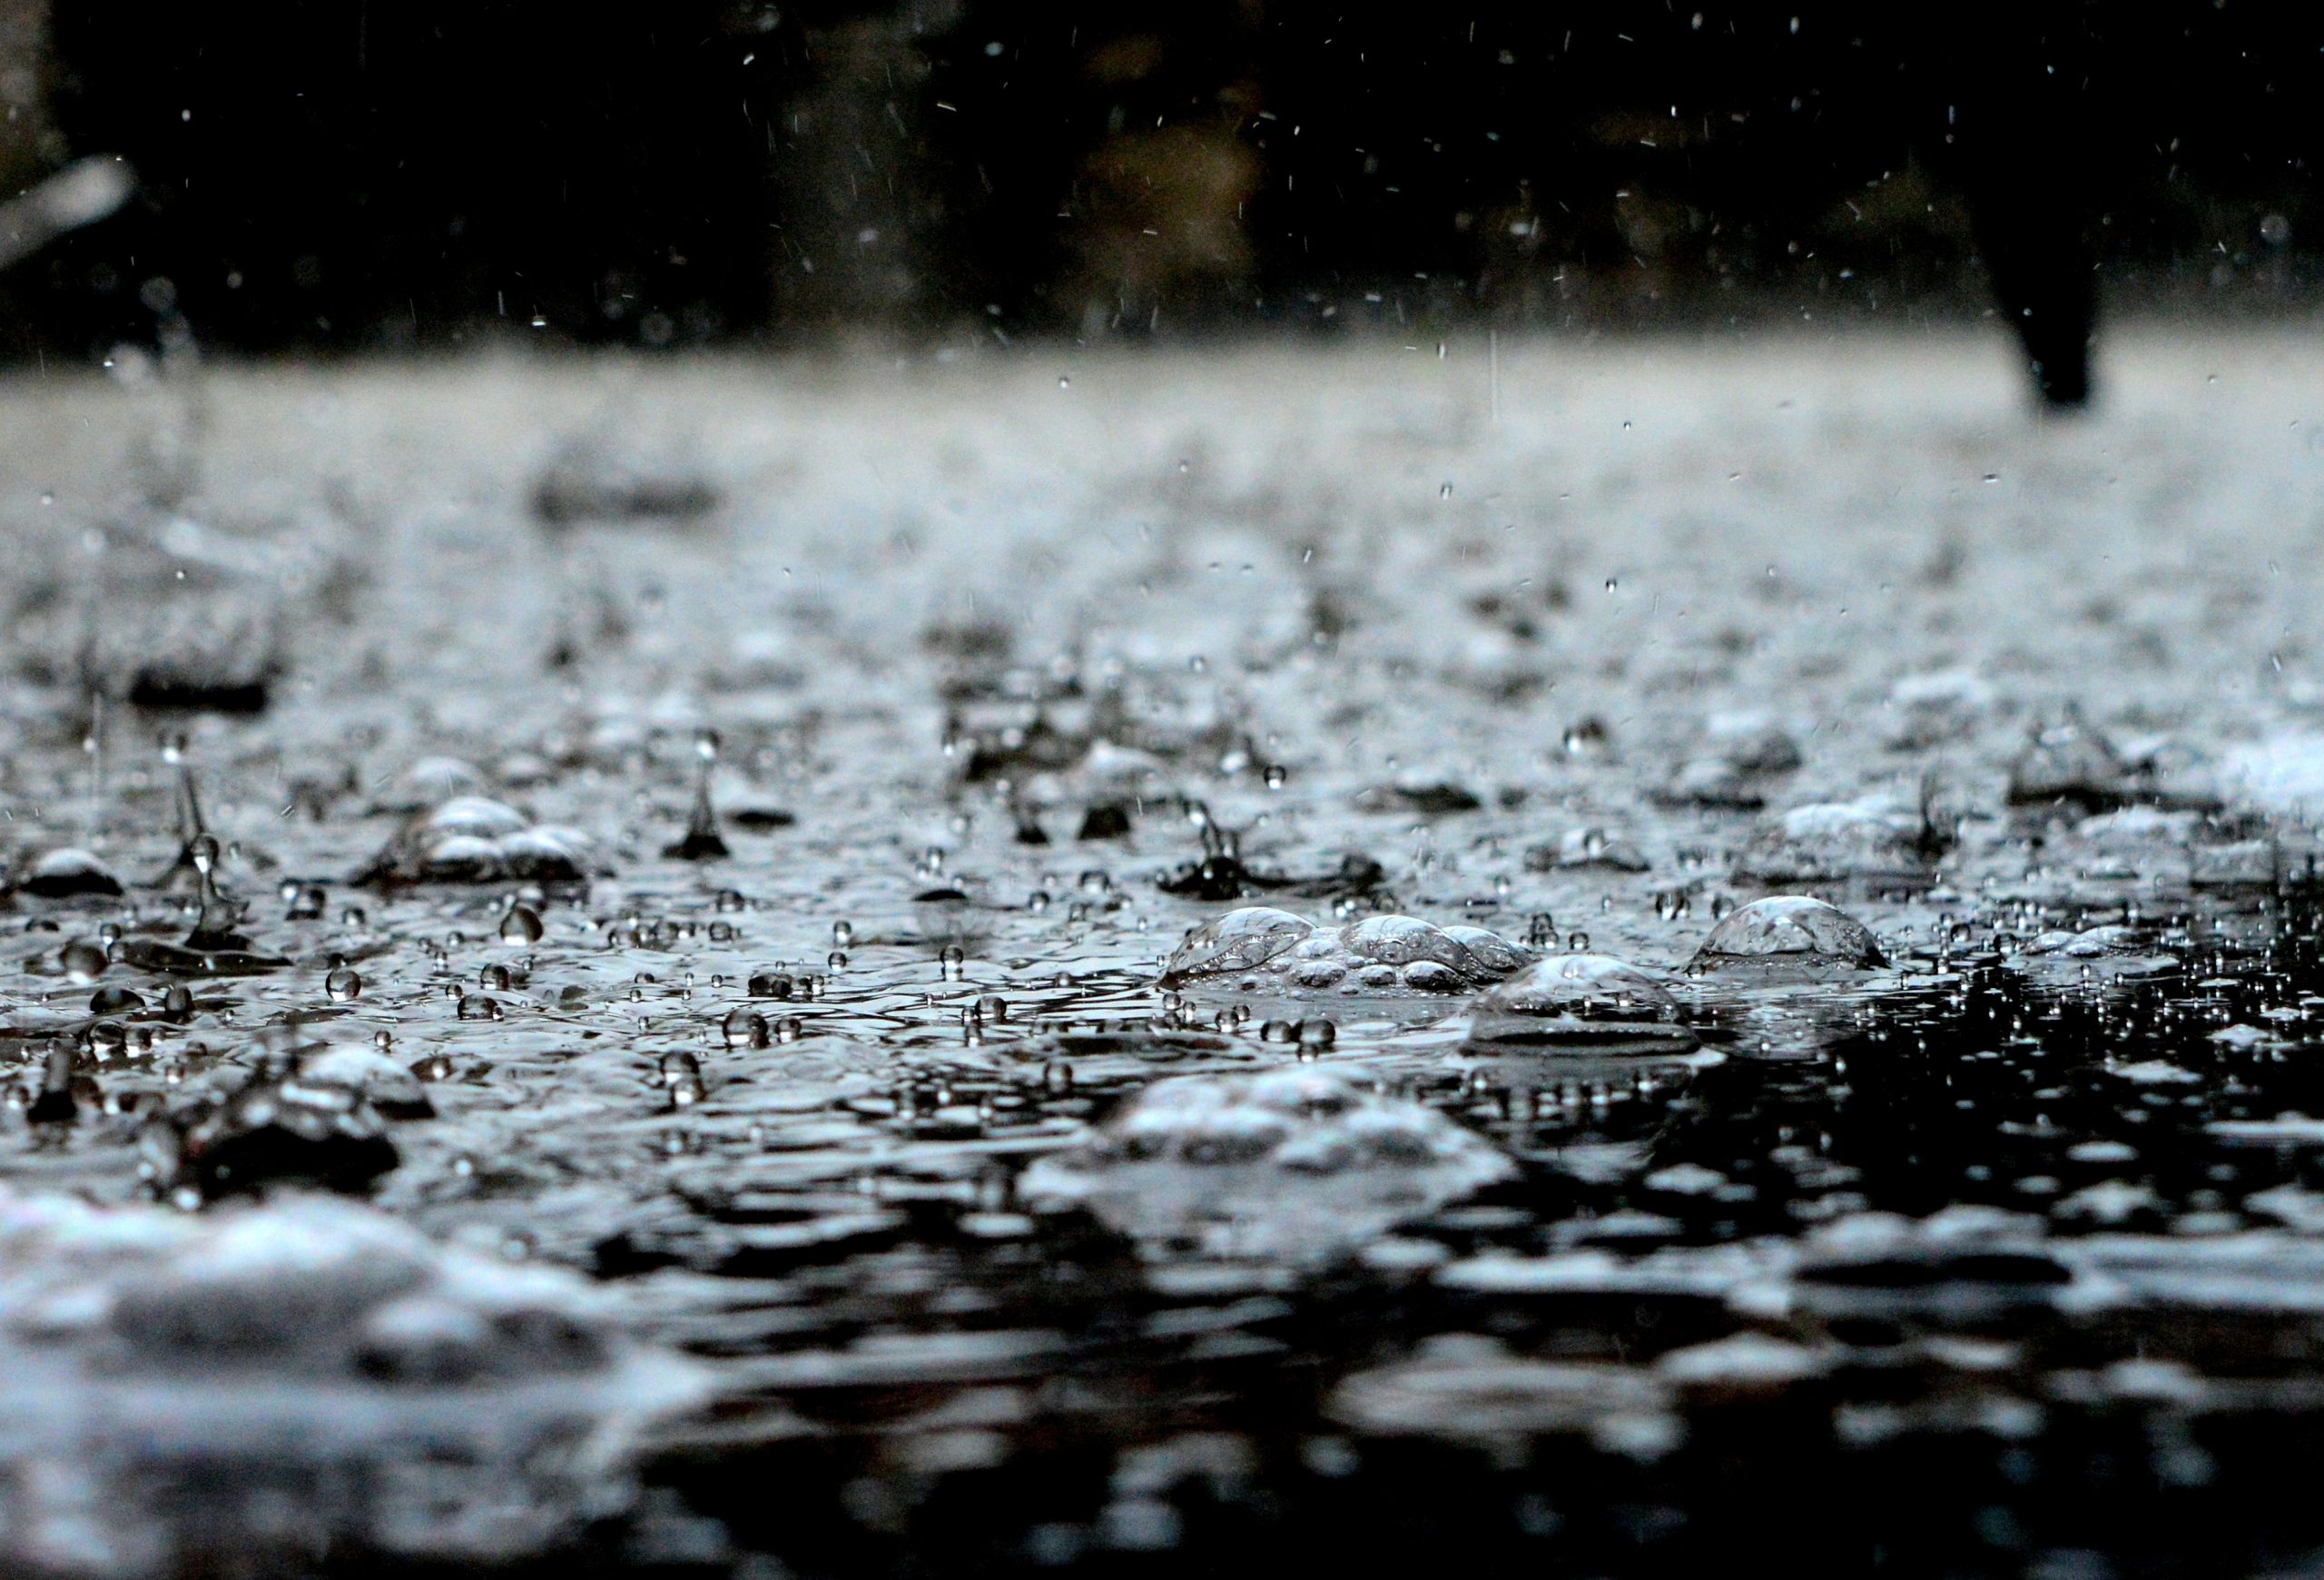 BEST PRECAUTIONARY MEASURES TO TAKE IN RAINFALL